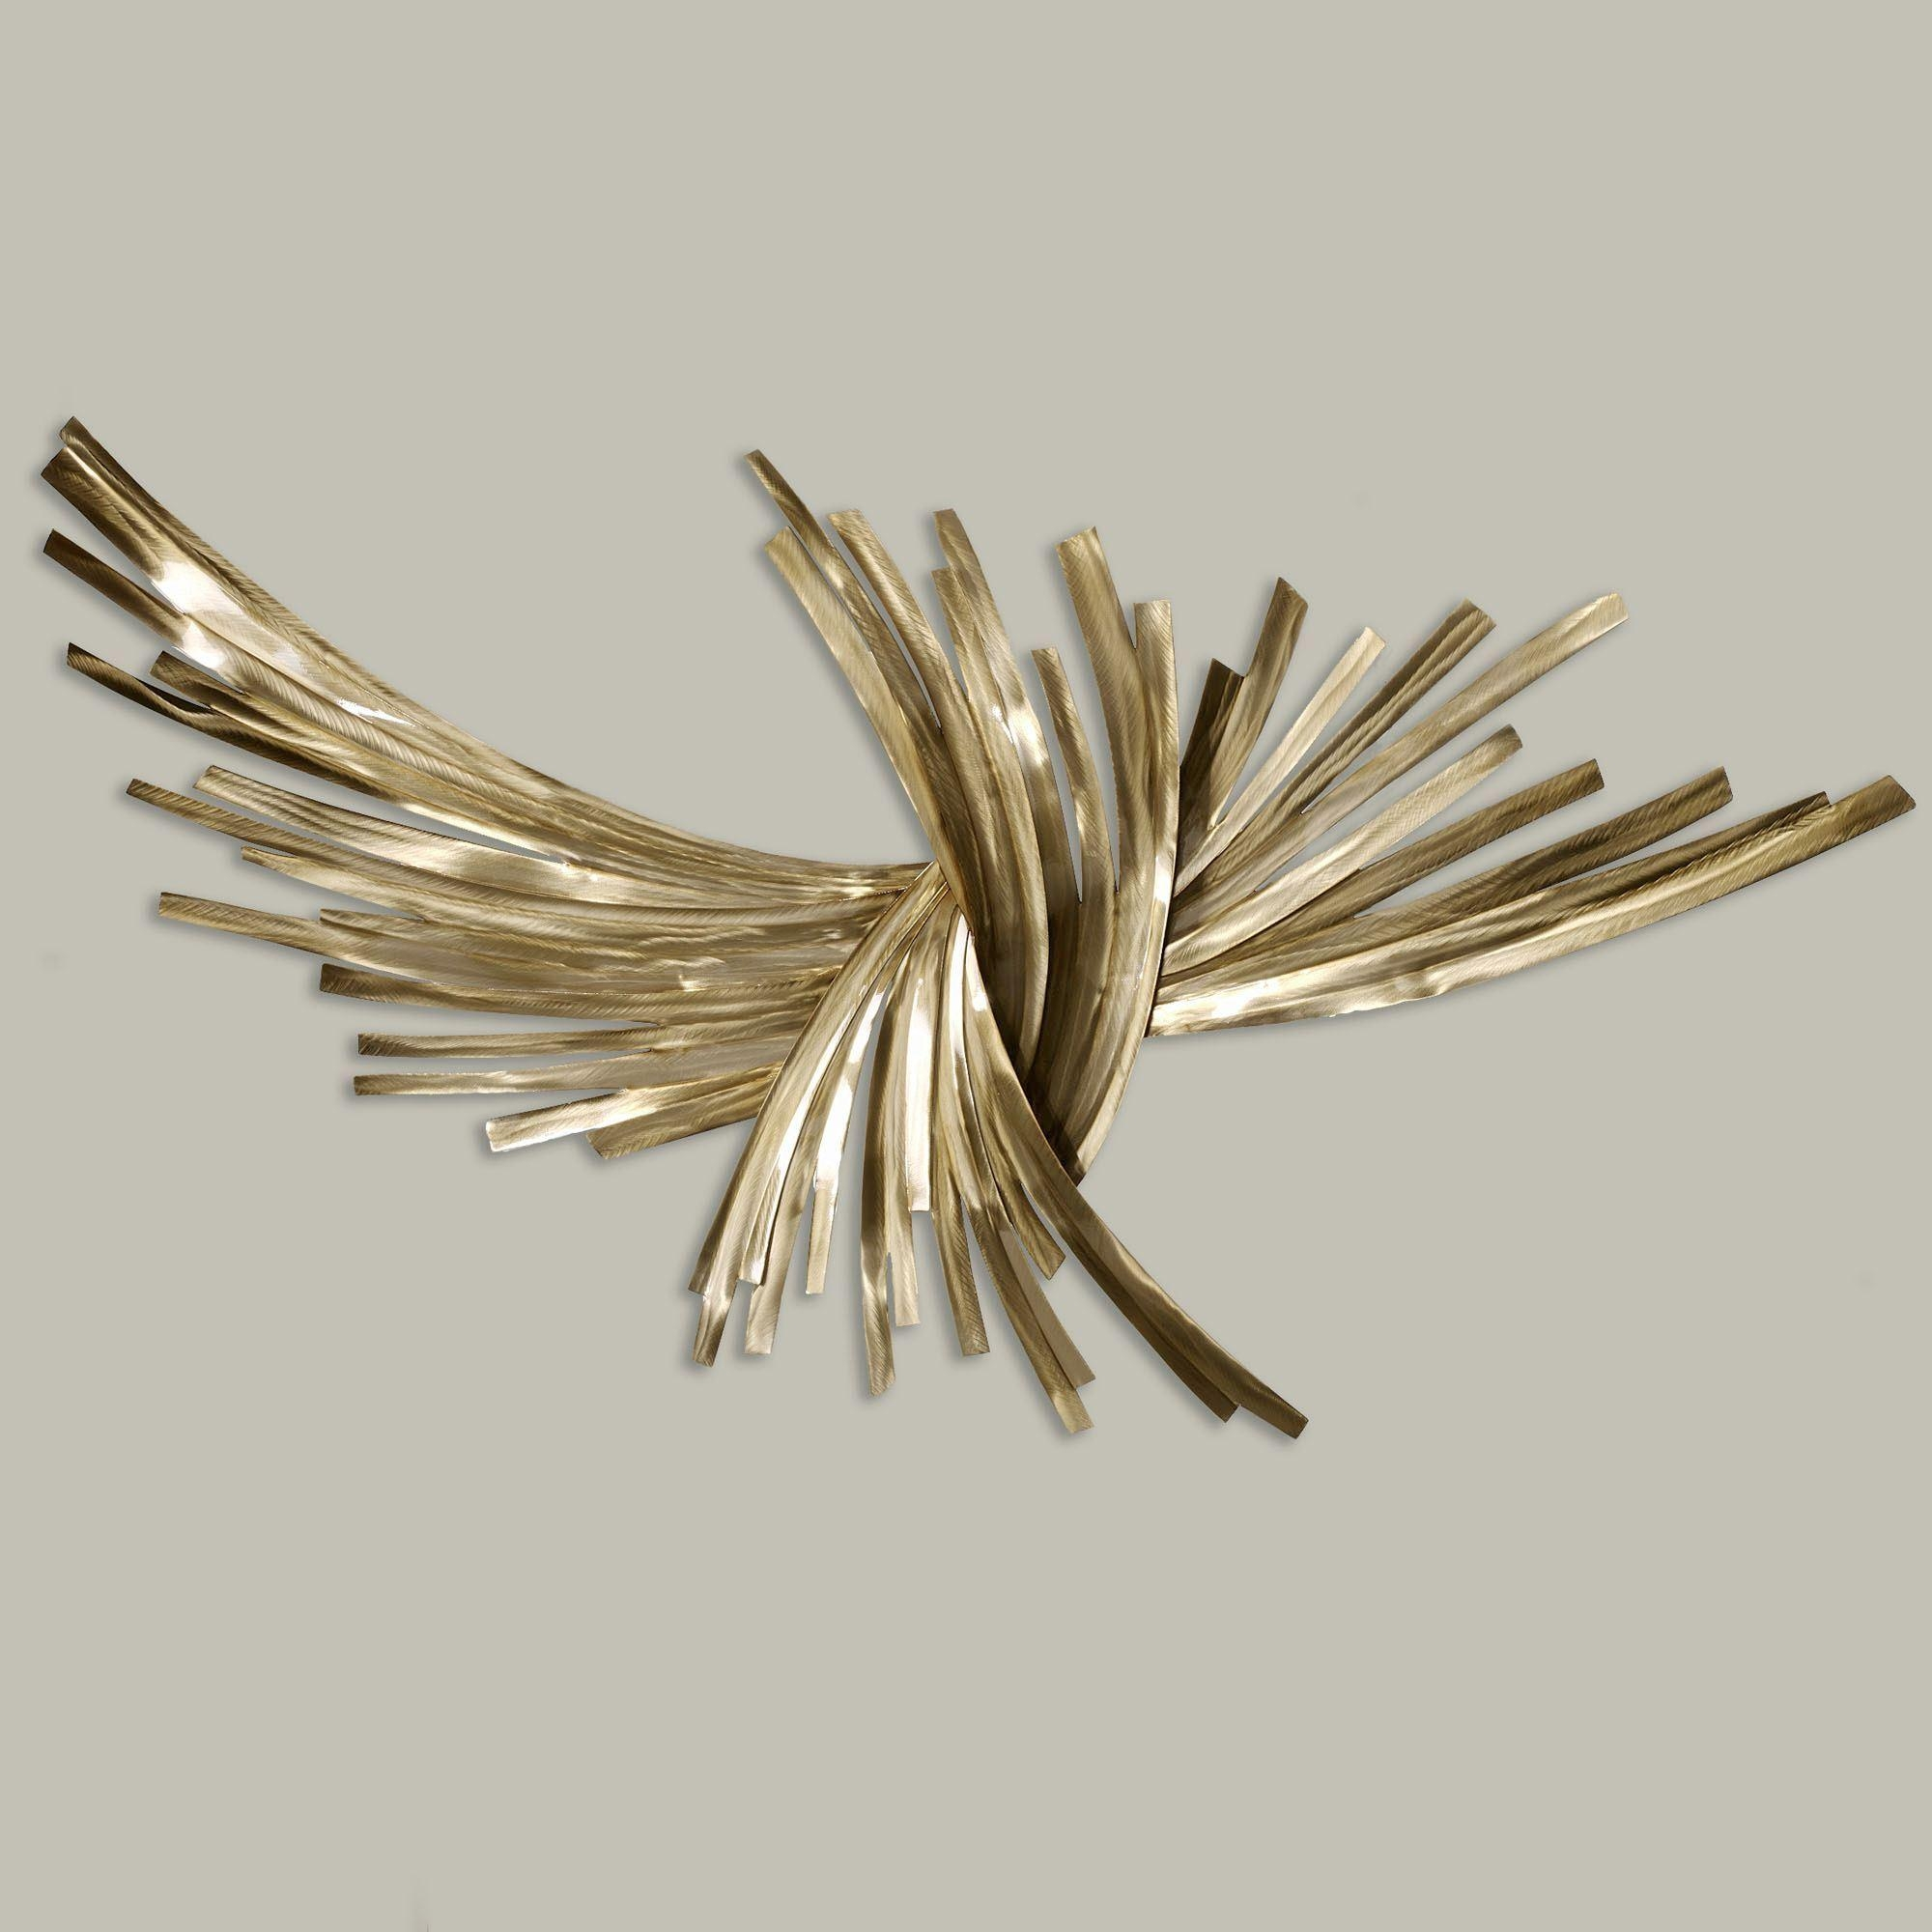 Contemporary Metal Wall Art Sculptures | Touch Of Class Regarding Contemporary Metal Wall Art Sculpture (Image 2 of 20)